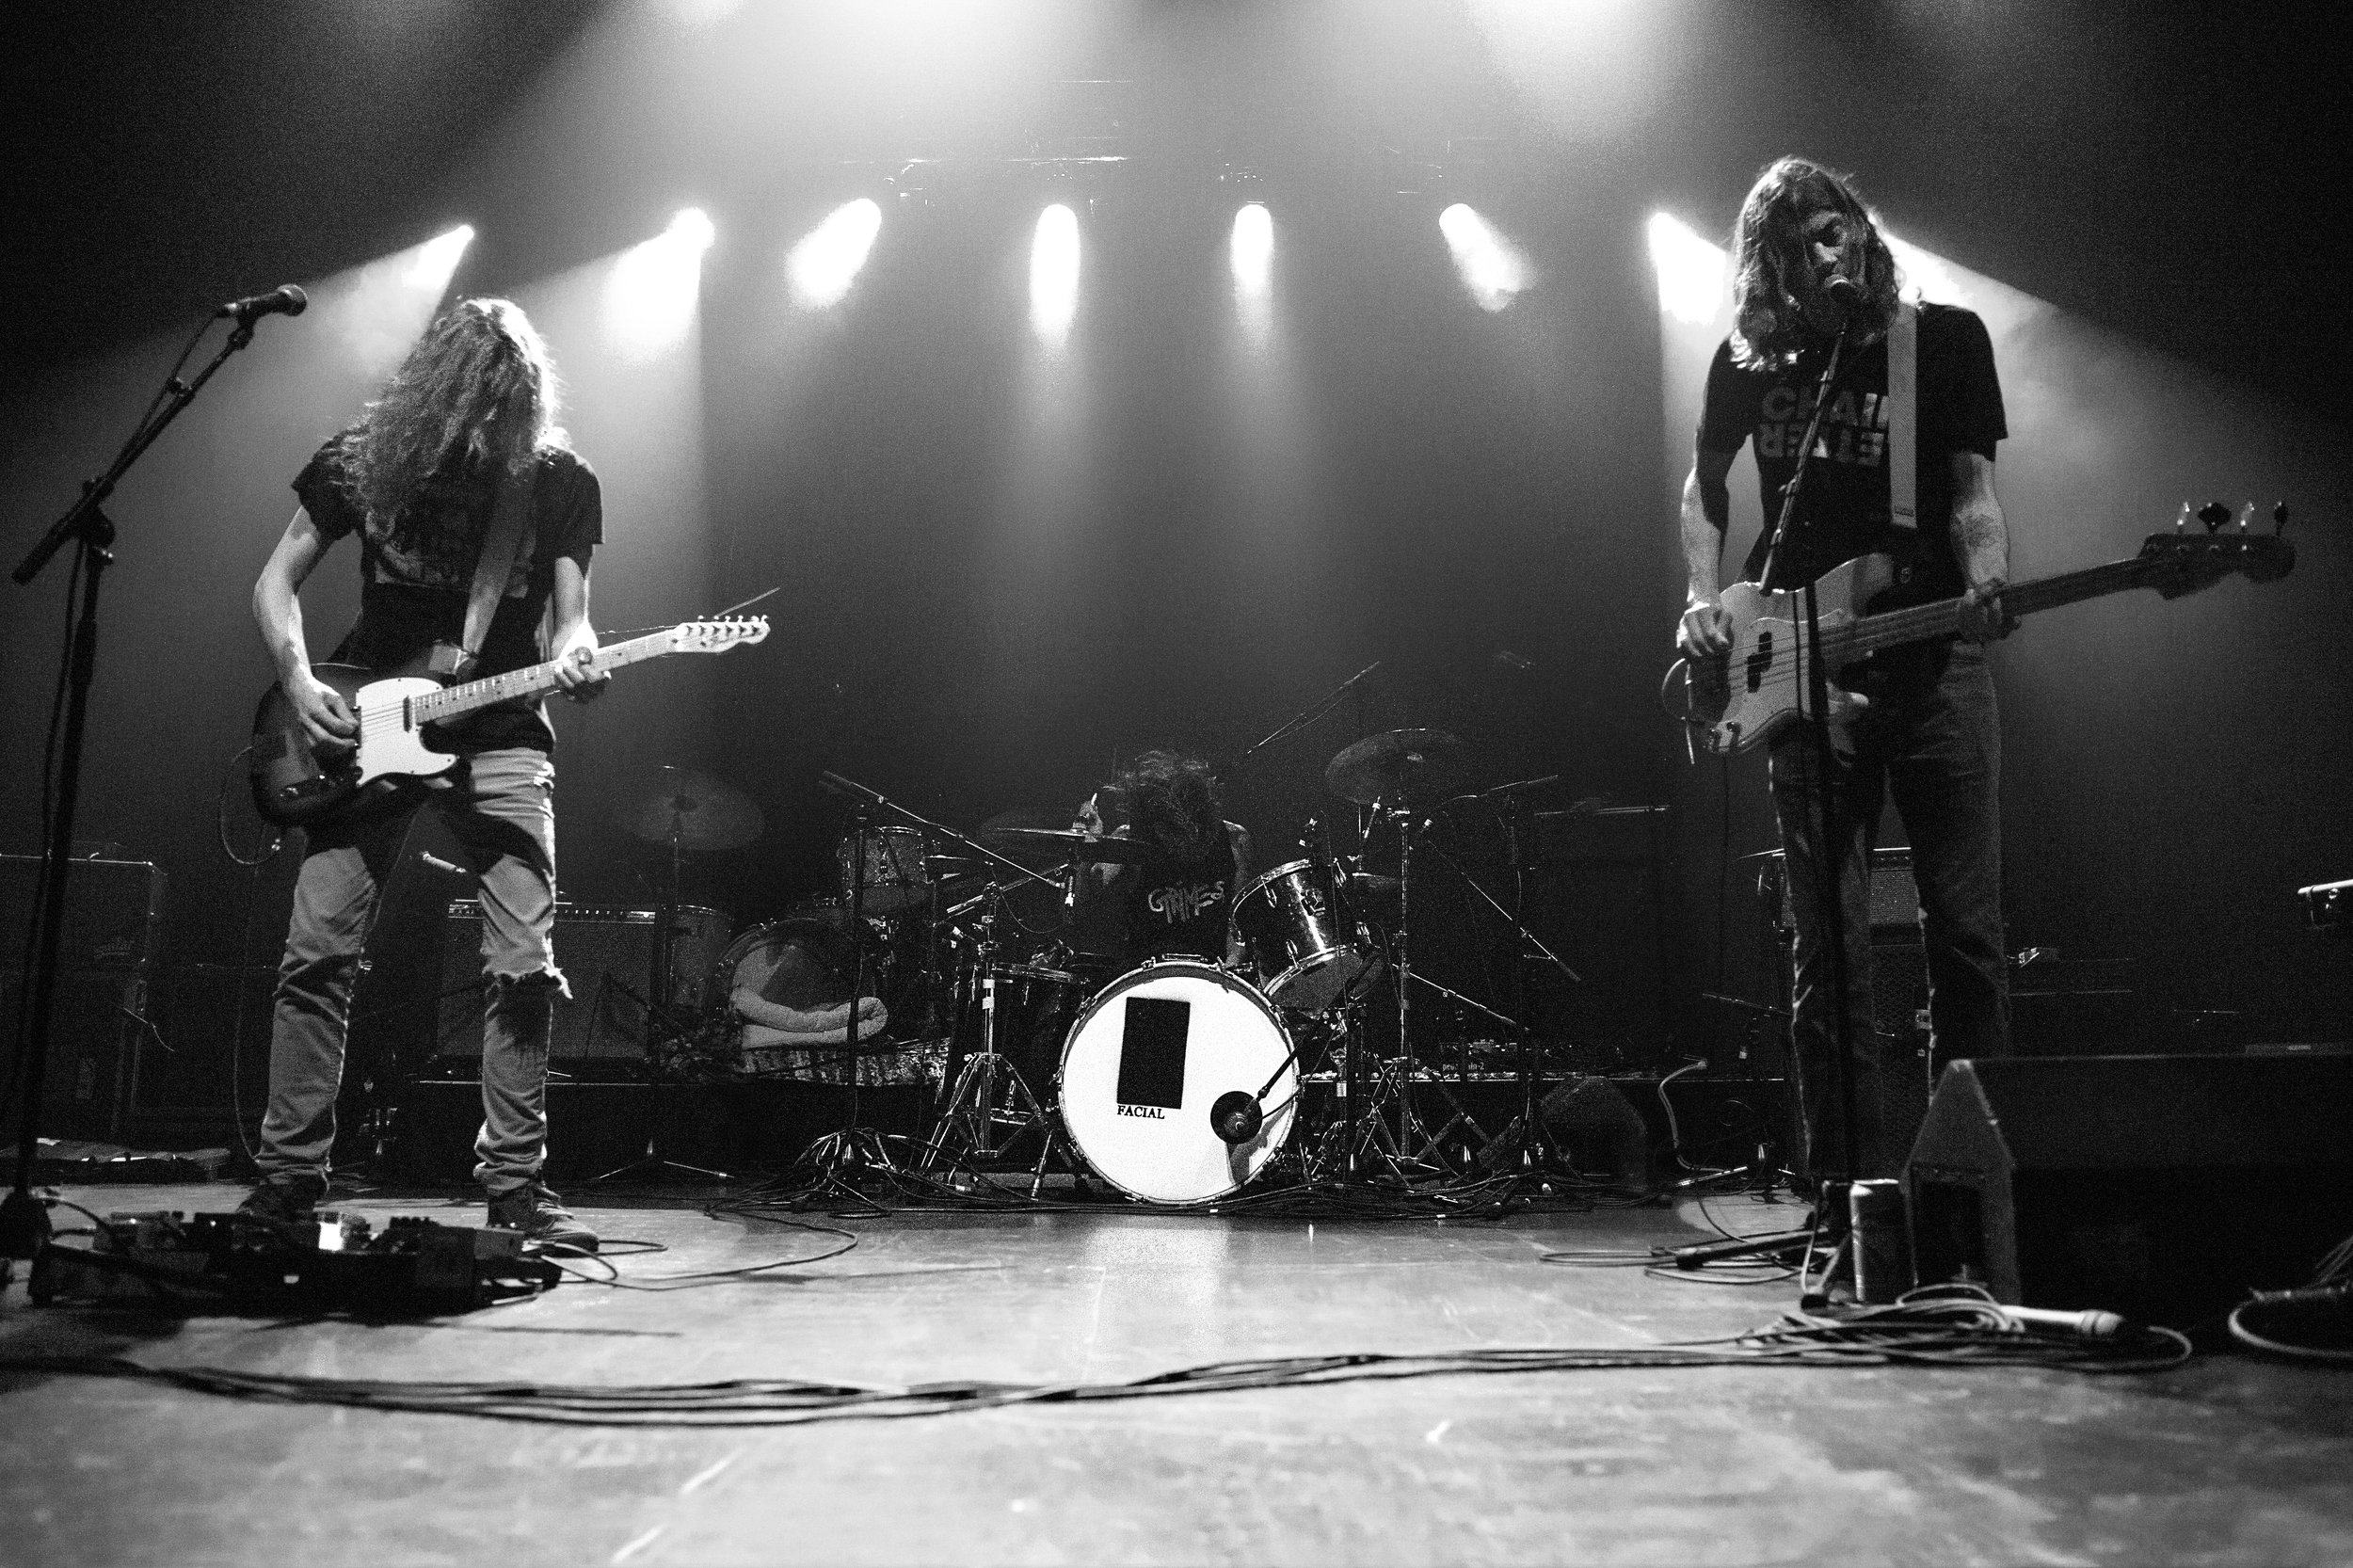 Facial, an L.A. based band opening for Warpaint.